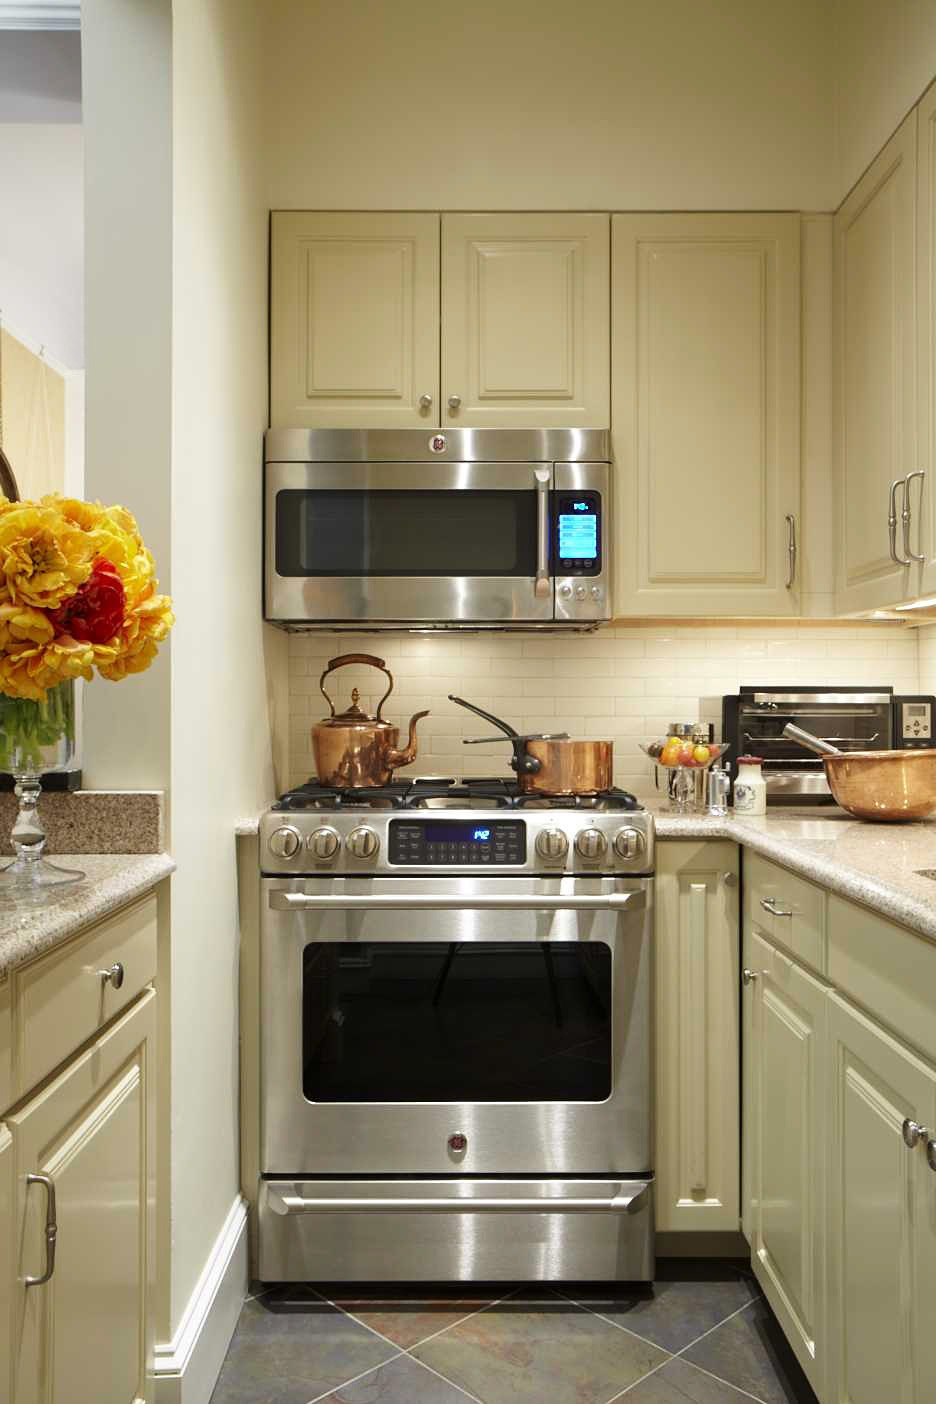 Top Kitchen Renovation Trends   ZING Blog By Quicken Loans | ZING Blog By  Quicken Loans